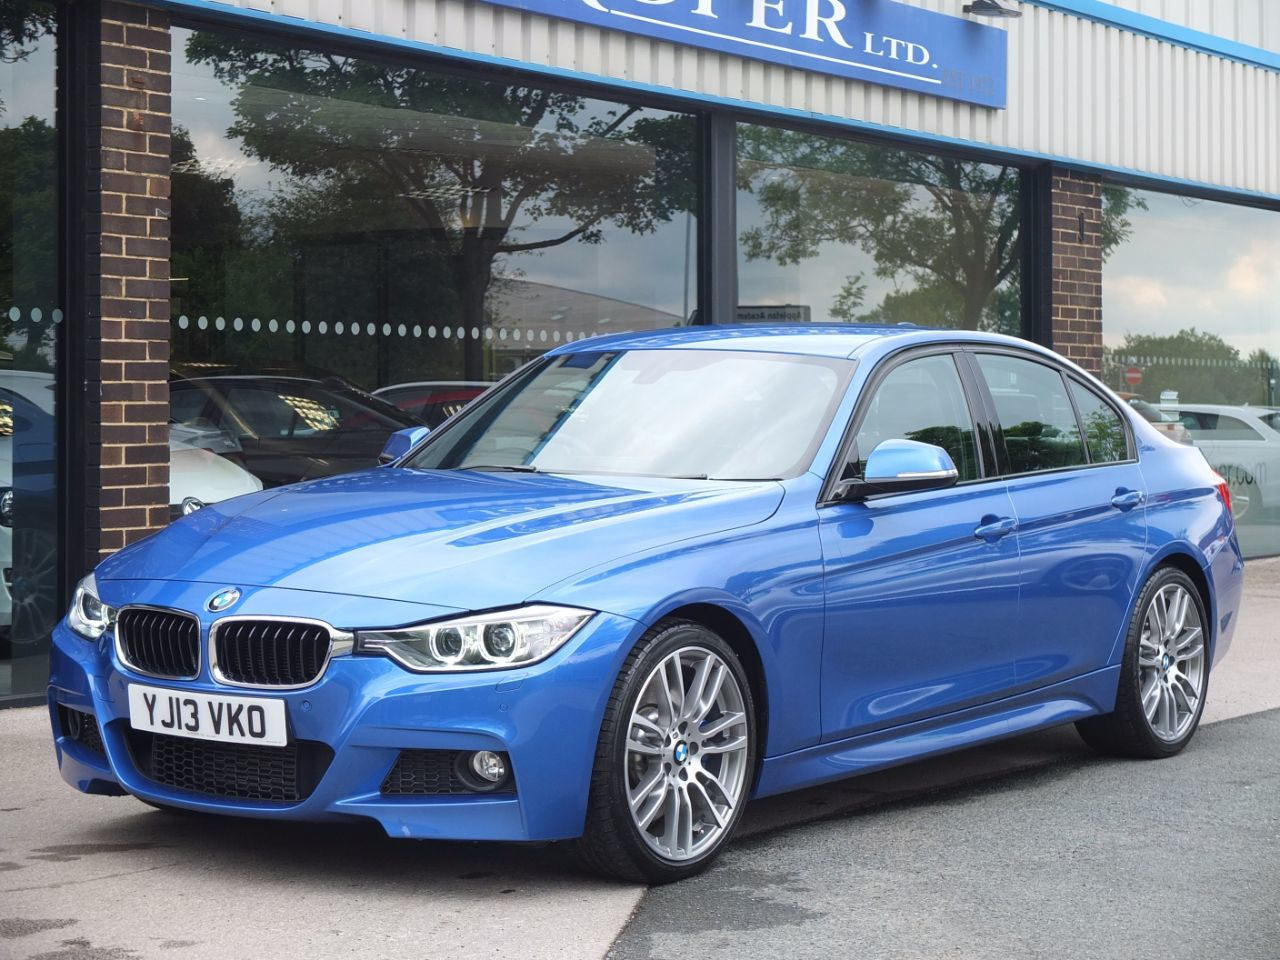 used bmw 3 series 330d blue performance m sport auto media pack for sale in bradford west. Black Bedroom Furniture Sets. Home Design Ideas